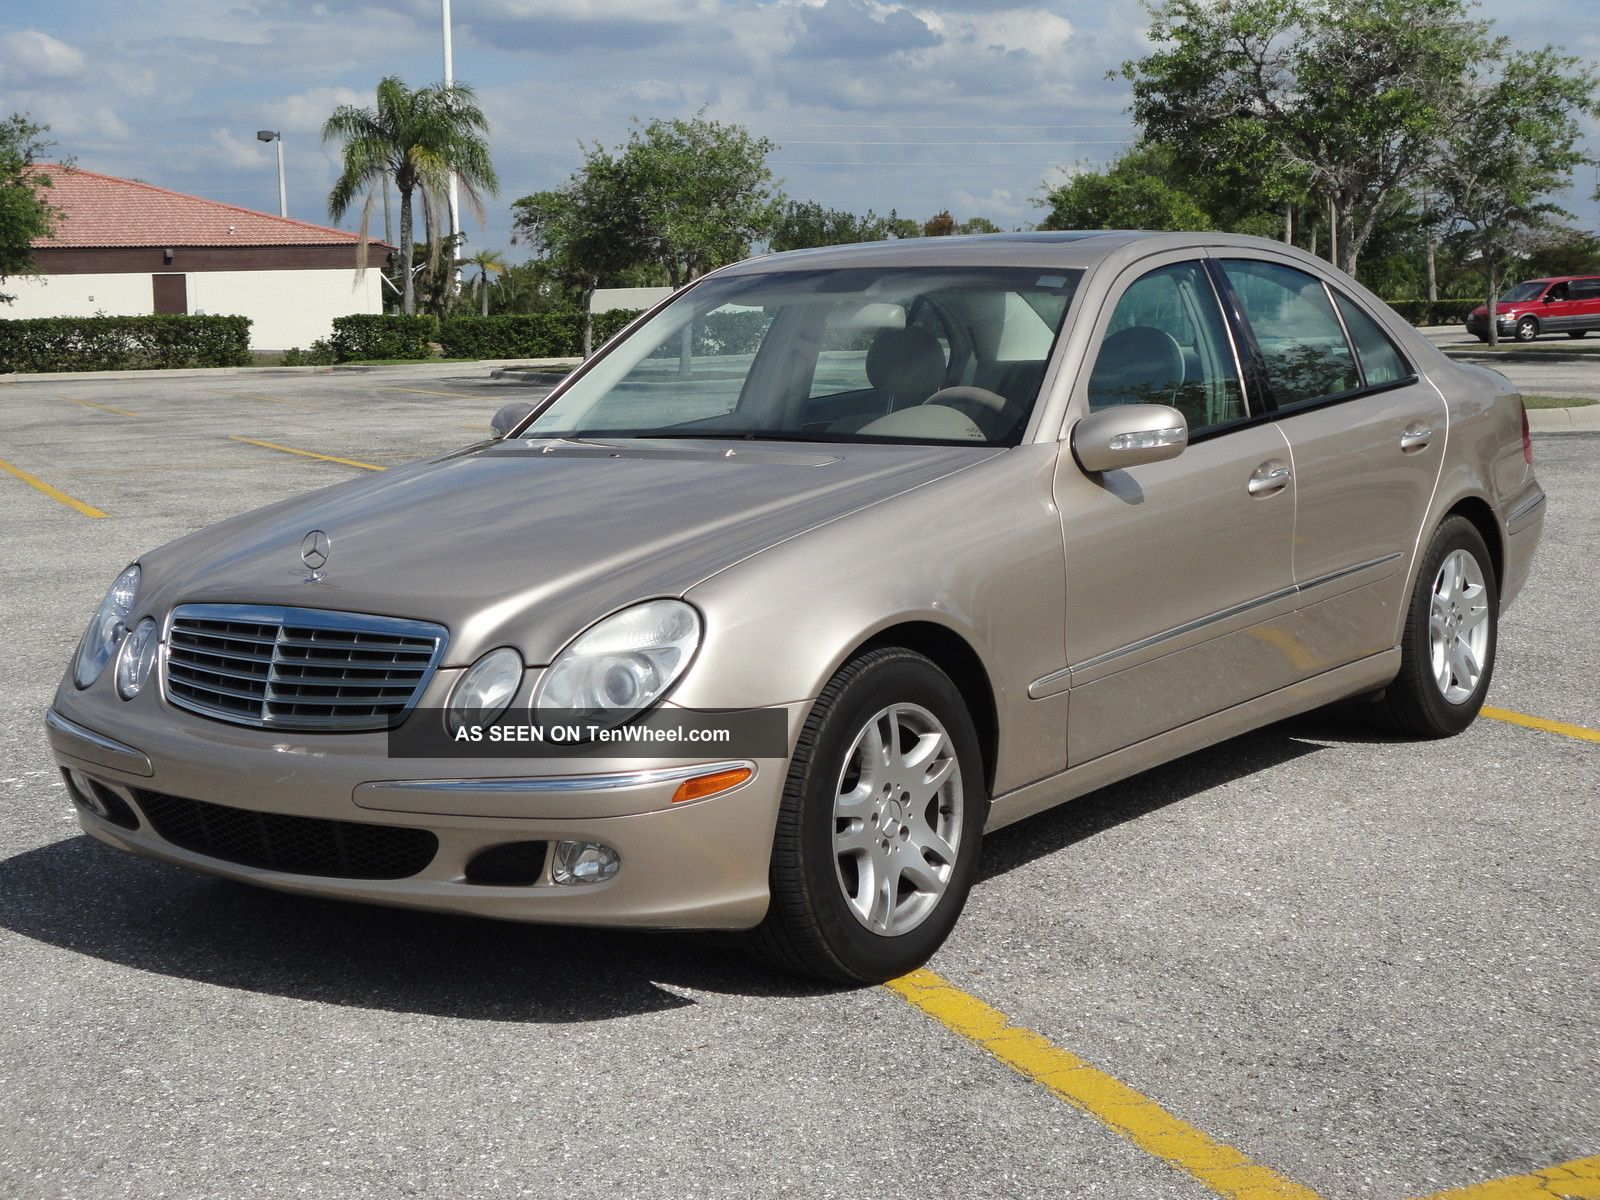 2003 mercedes benz e320 florida car wonderful shape